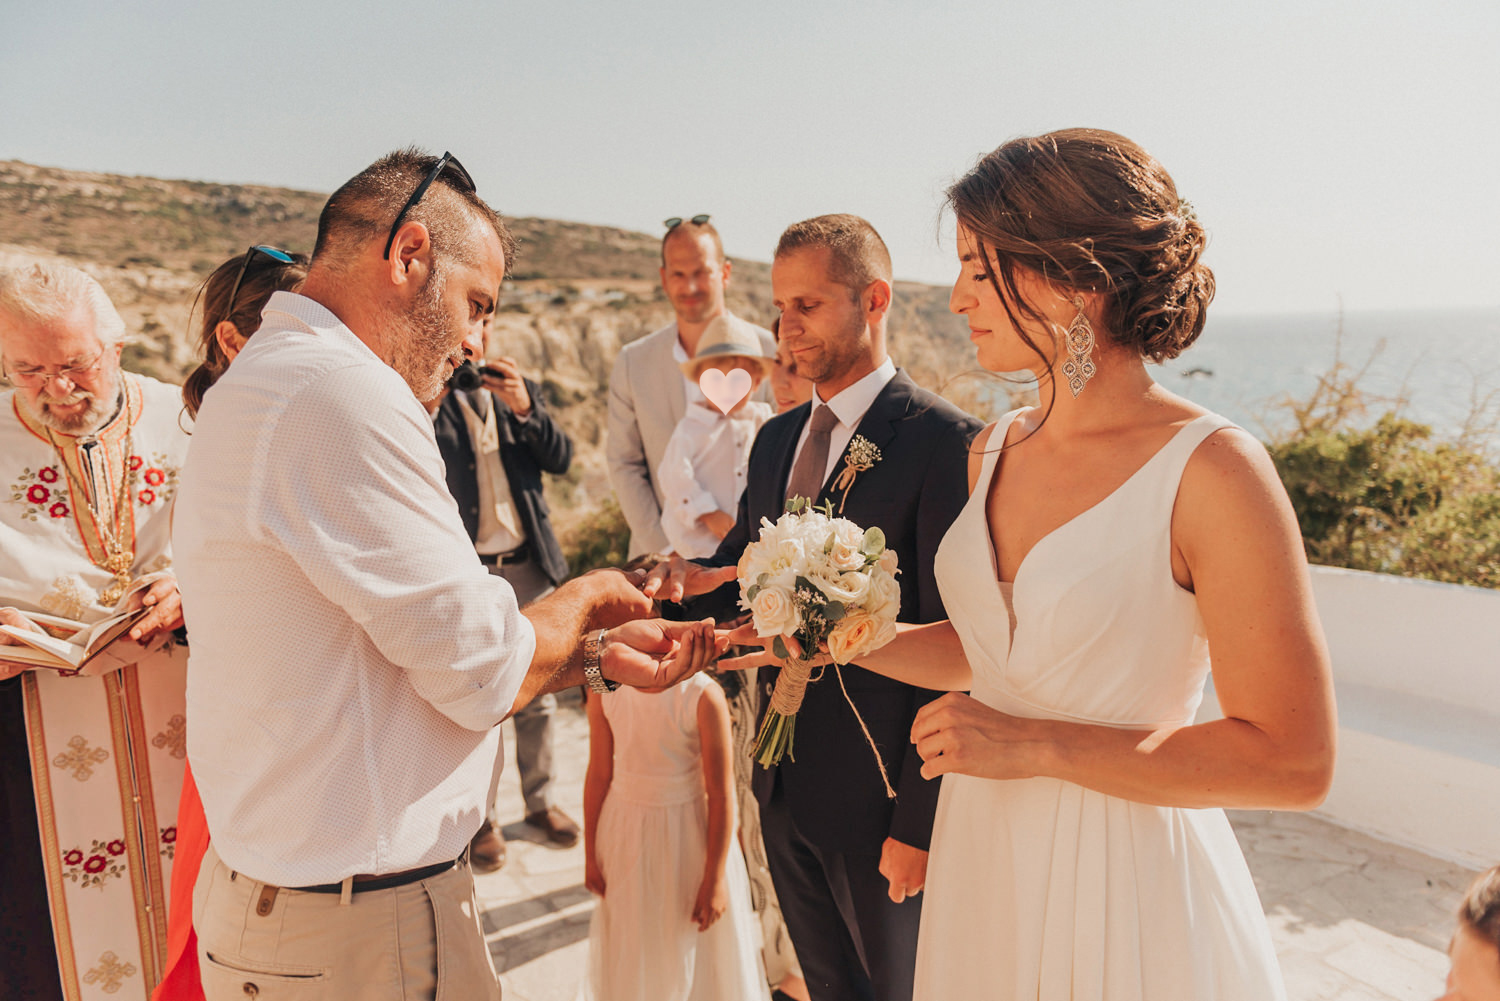 Hochzeitsfotograf-Kreta-Auslandshochzeit-Destination-wedding-crete-greece-wedding photographer-36 Kopie